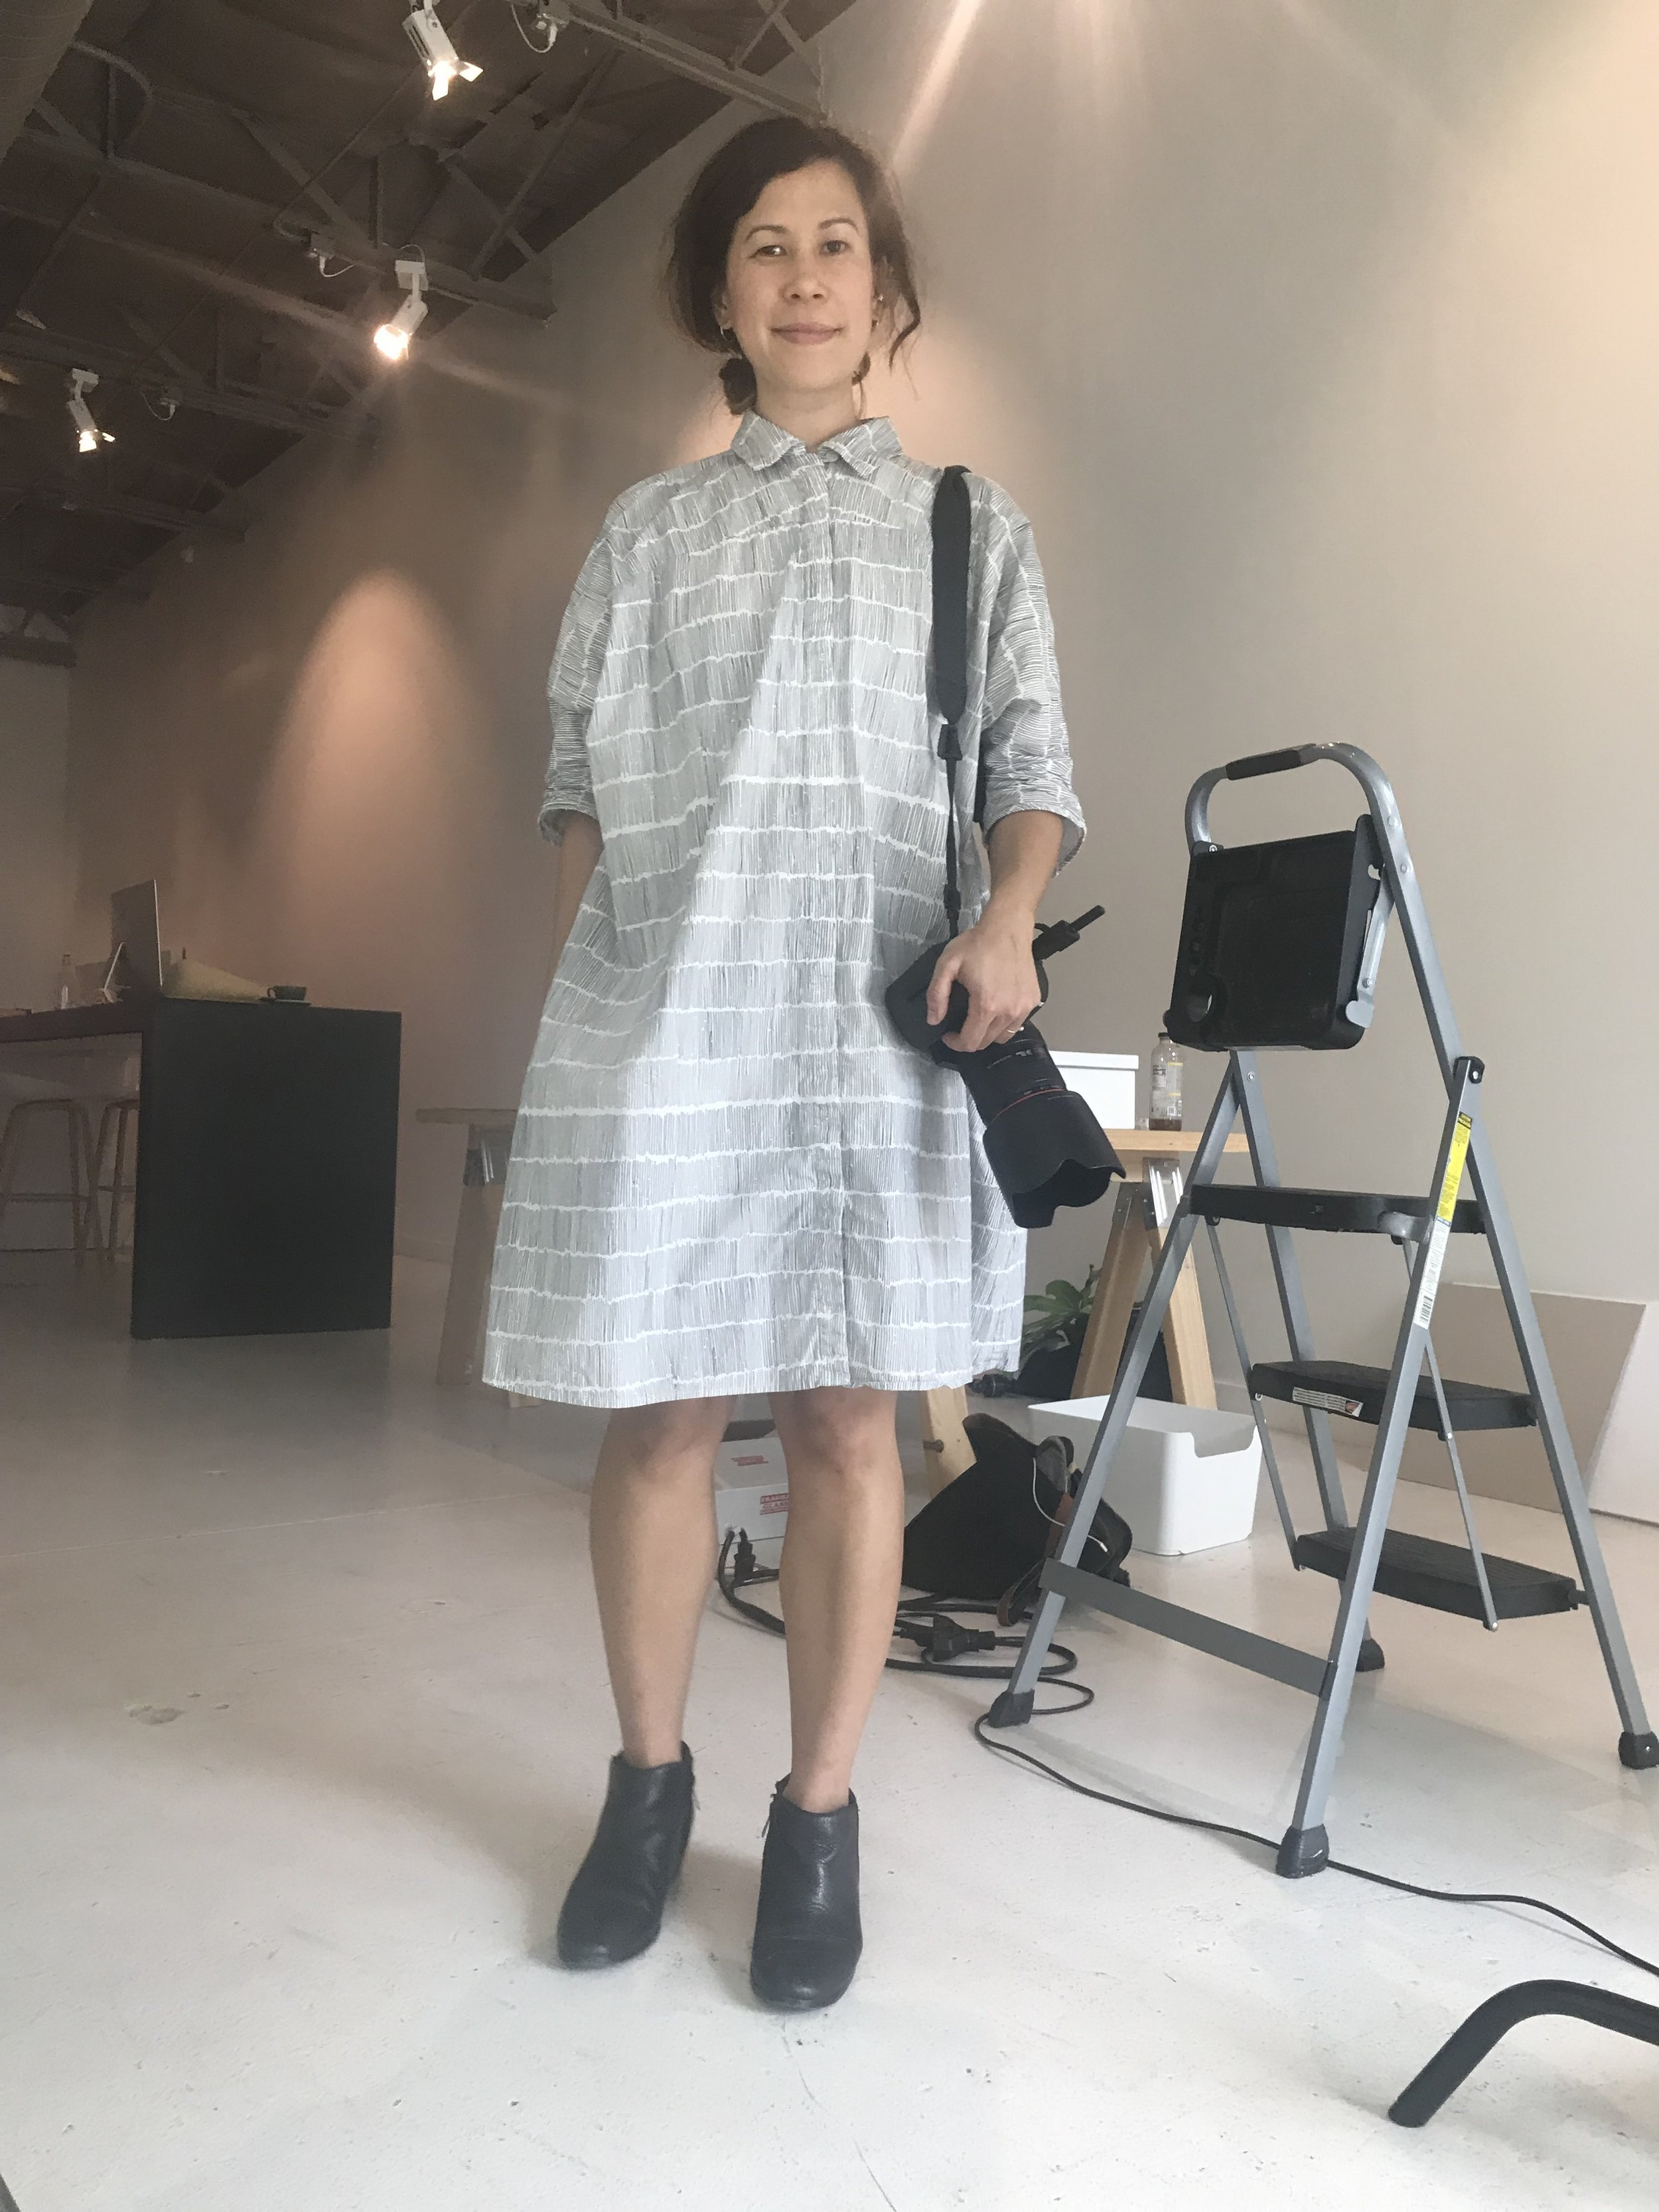 Keeping this dress for the Spring Capsule!